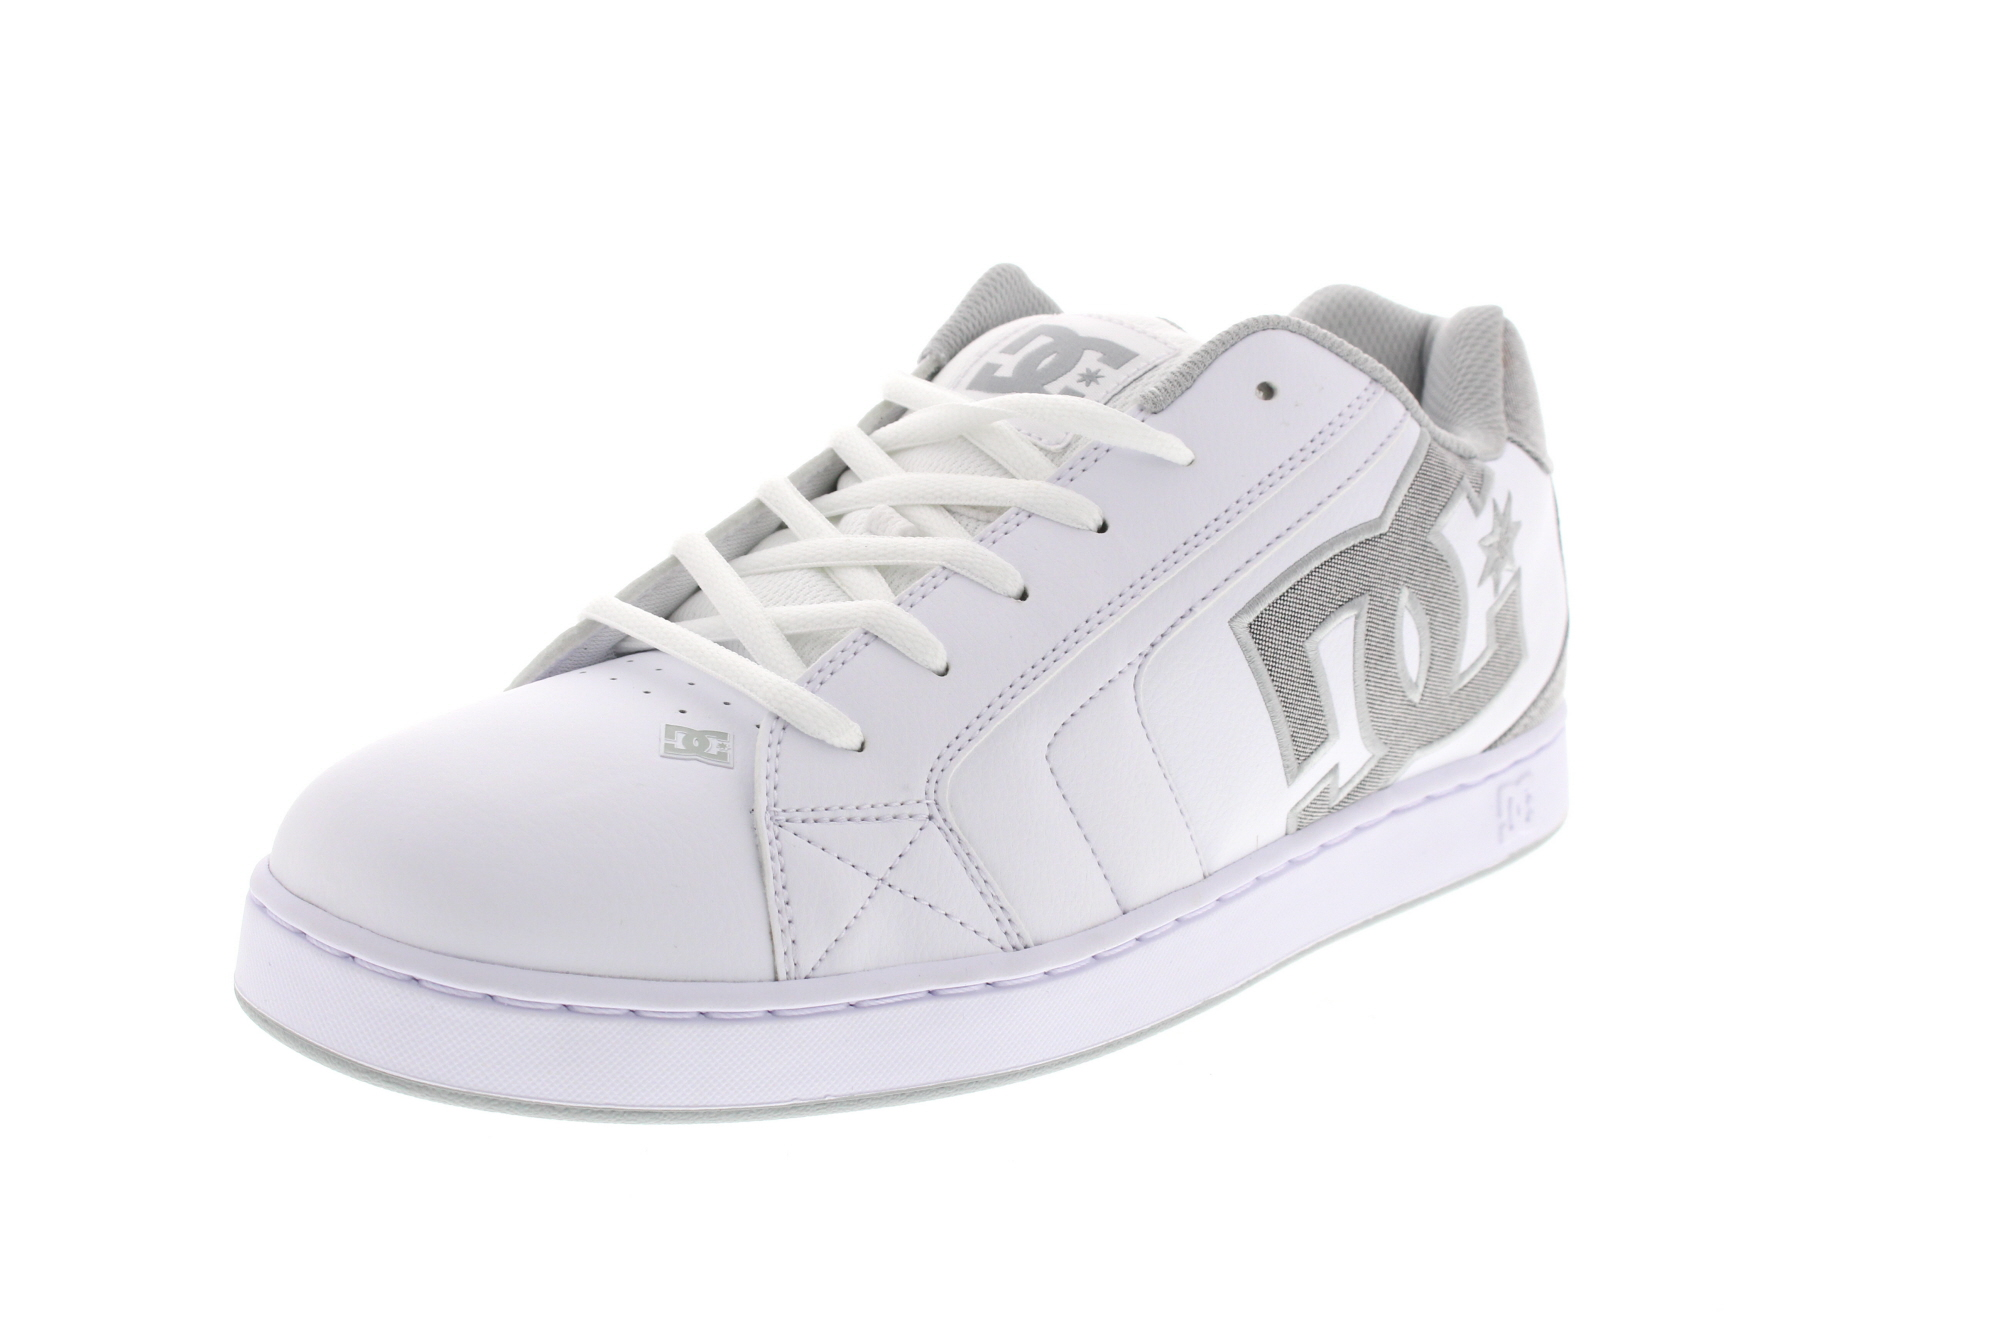 DC Sneakers in Übergröße NET SE 302297 white light grey